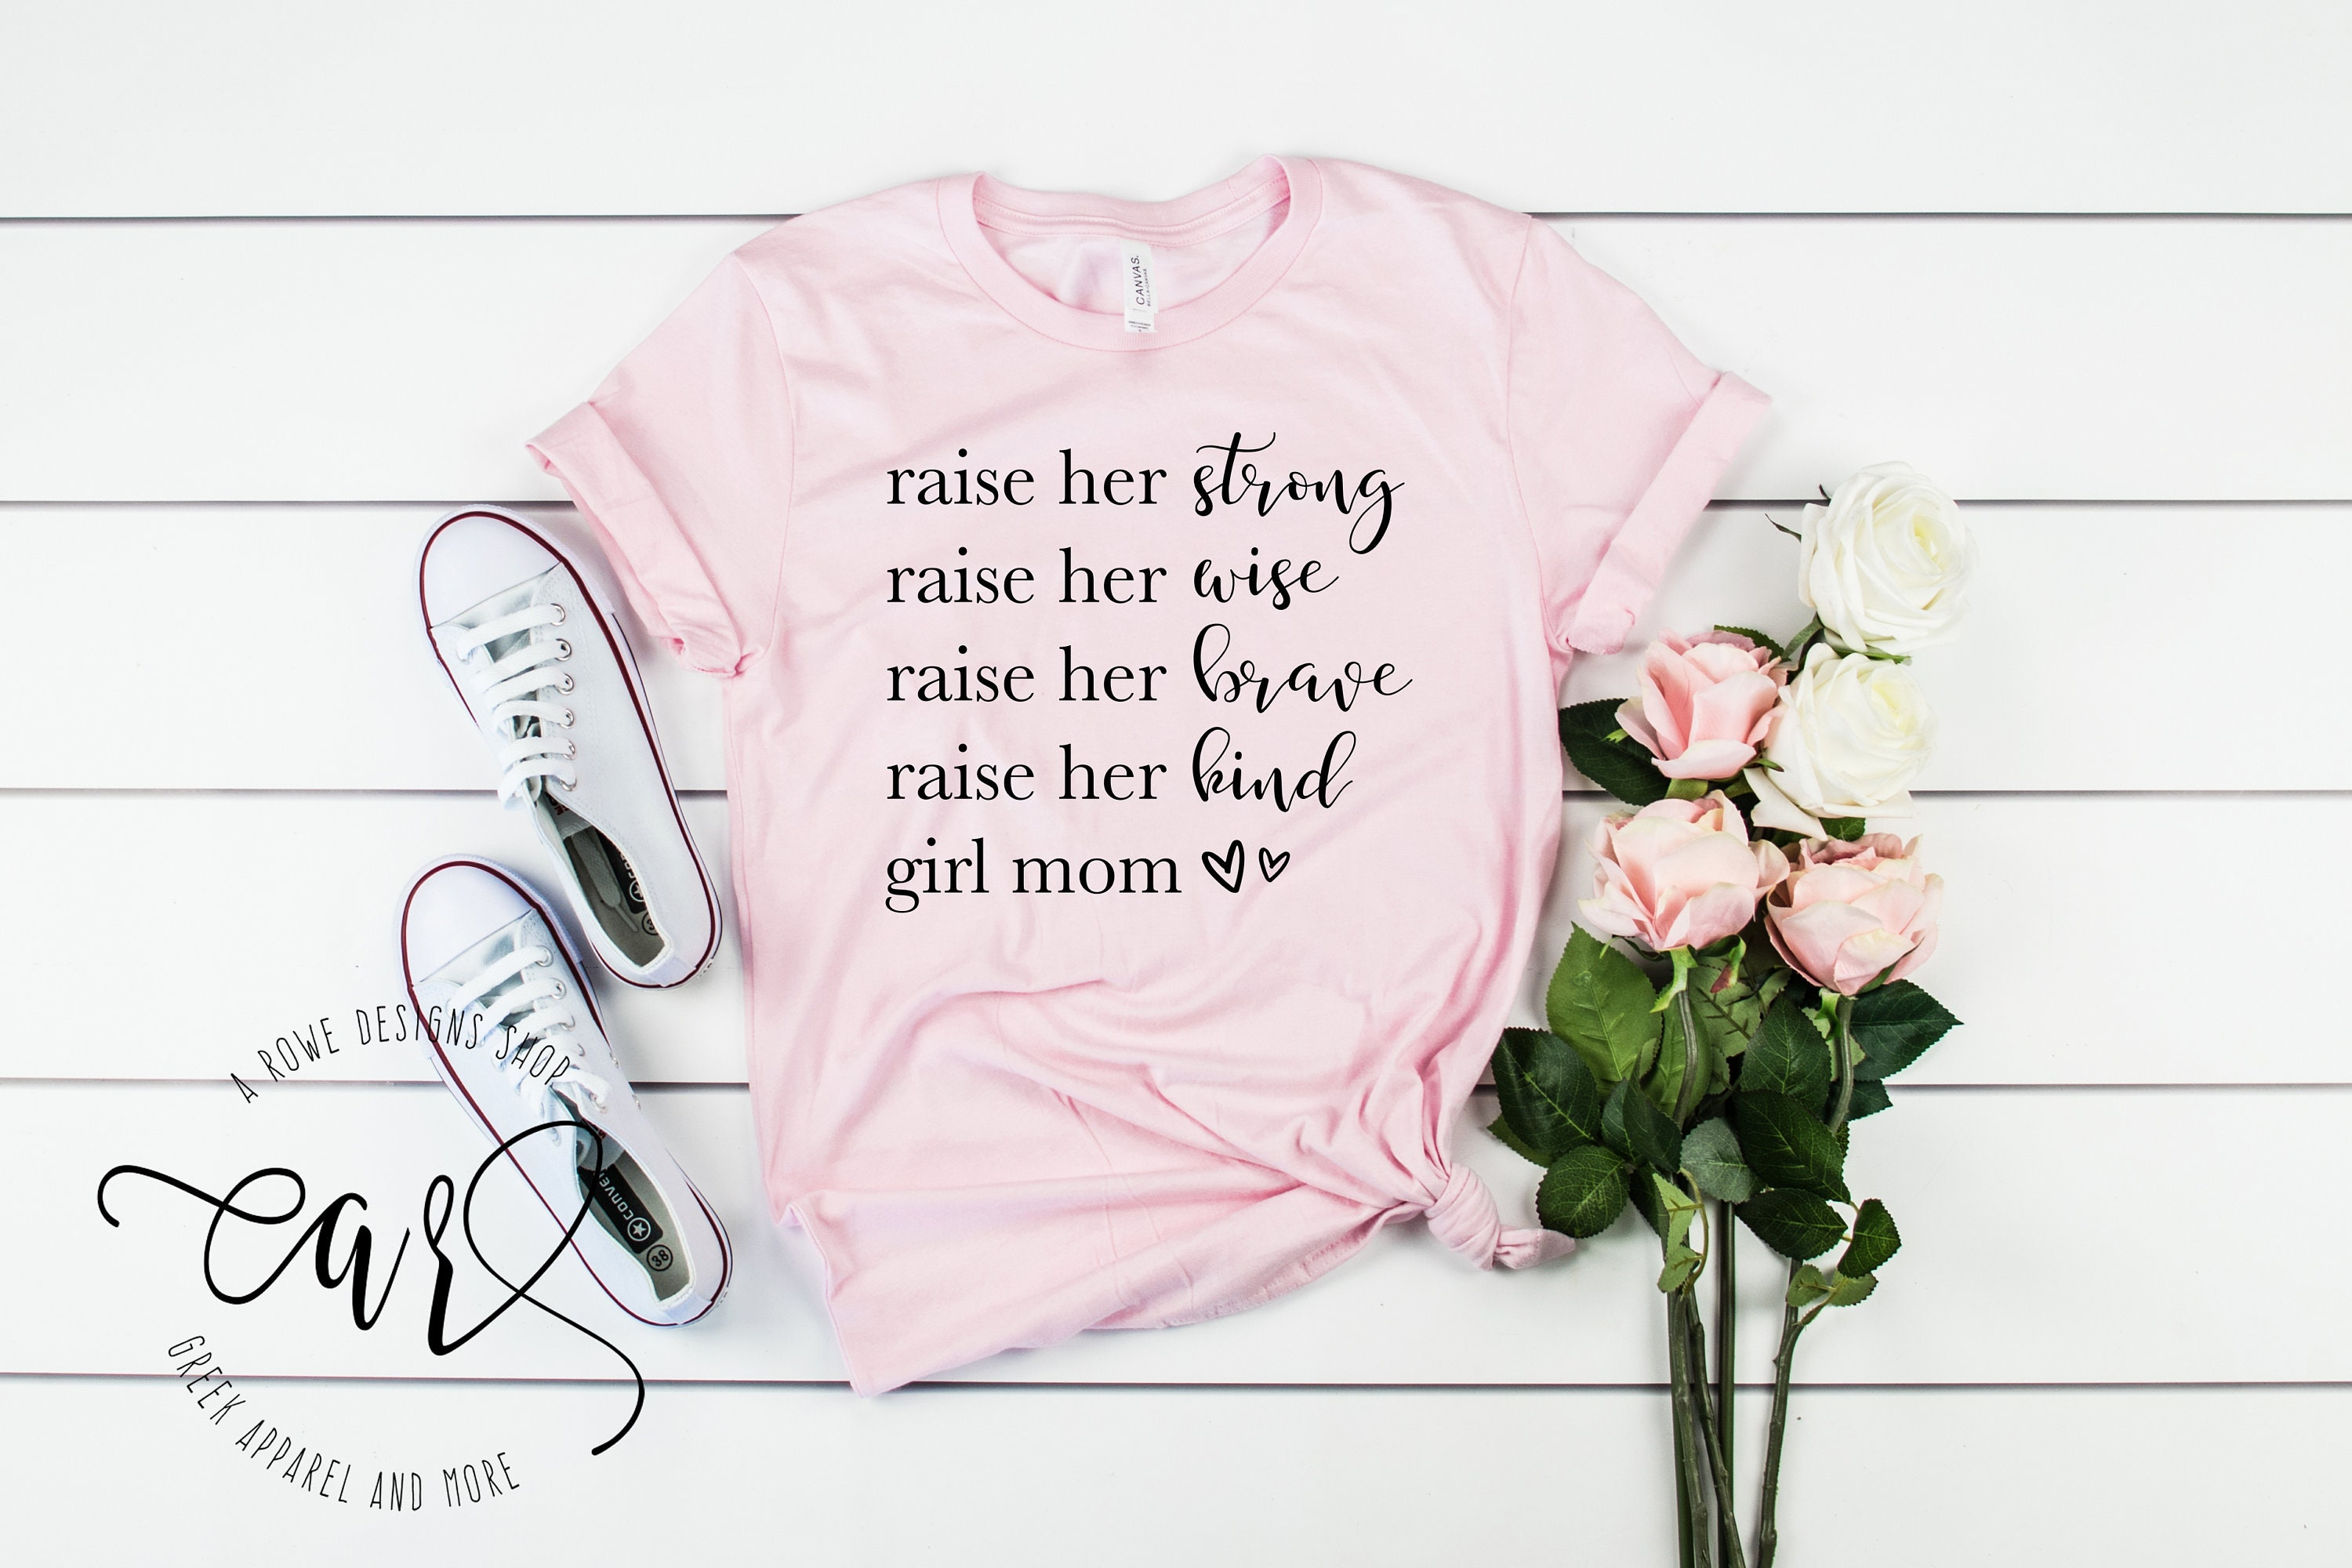 Girl mom tee, Mom of girls tee, Rise her Tees, Raising Girls Tees, Happy  Mom Tees, Mom tee